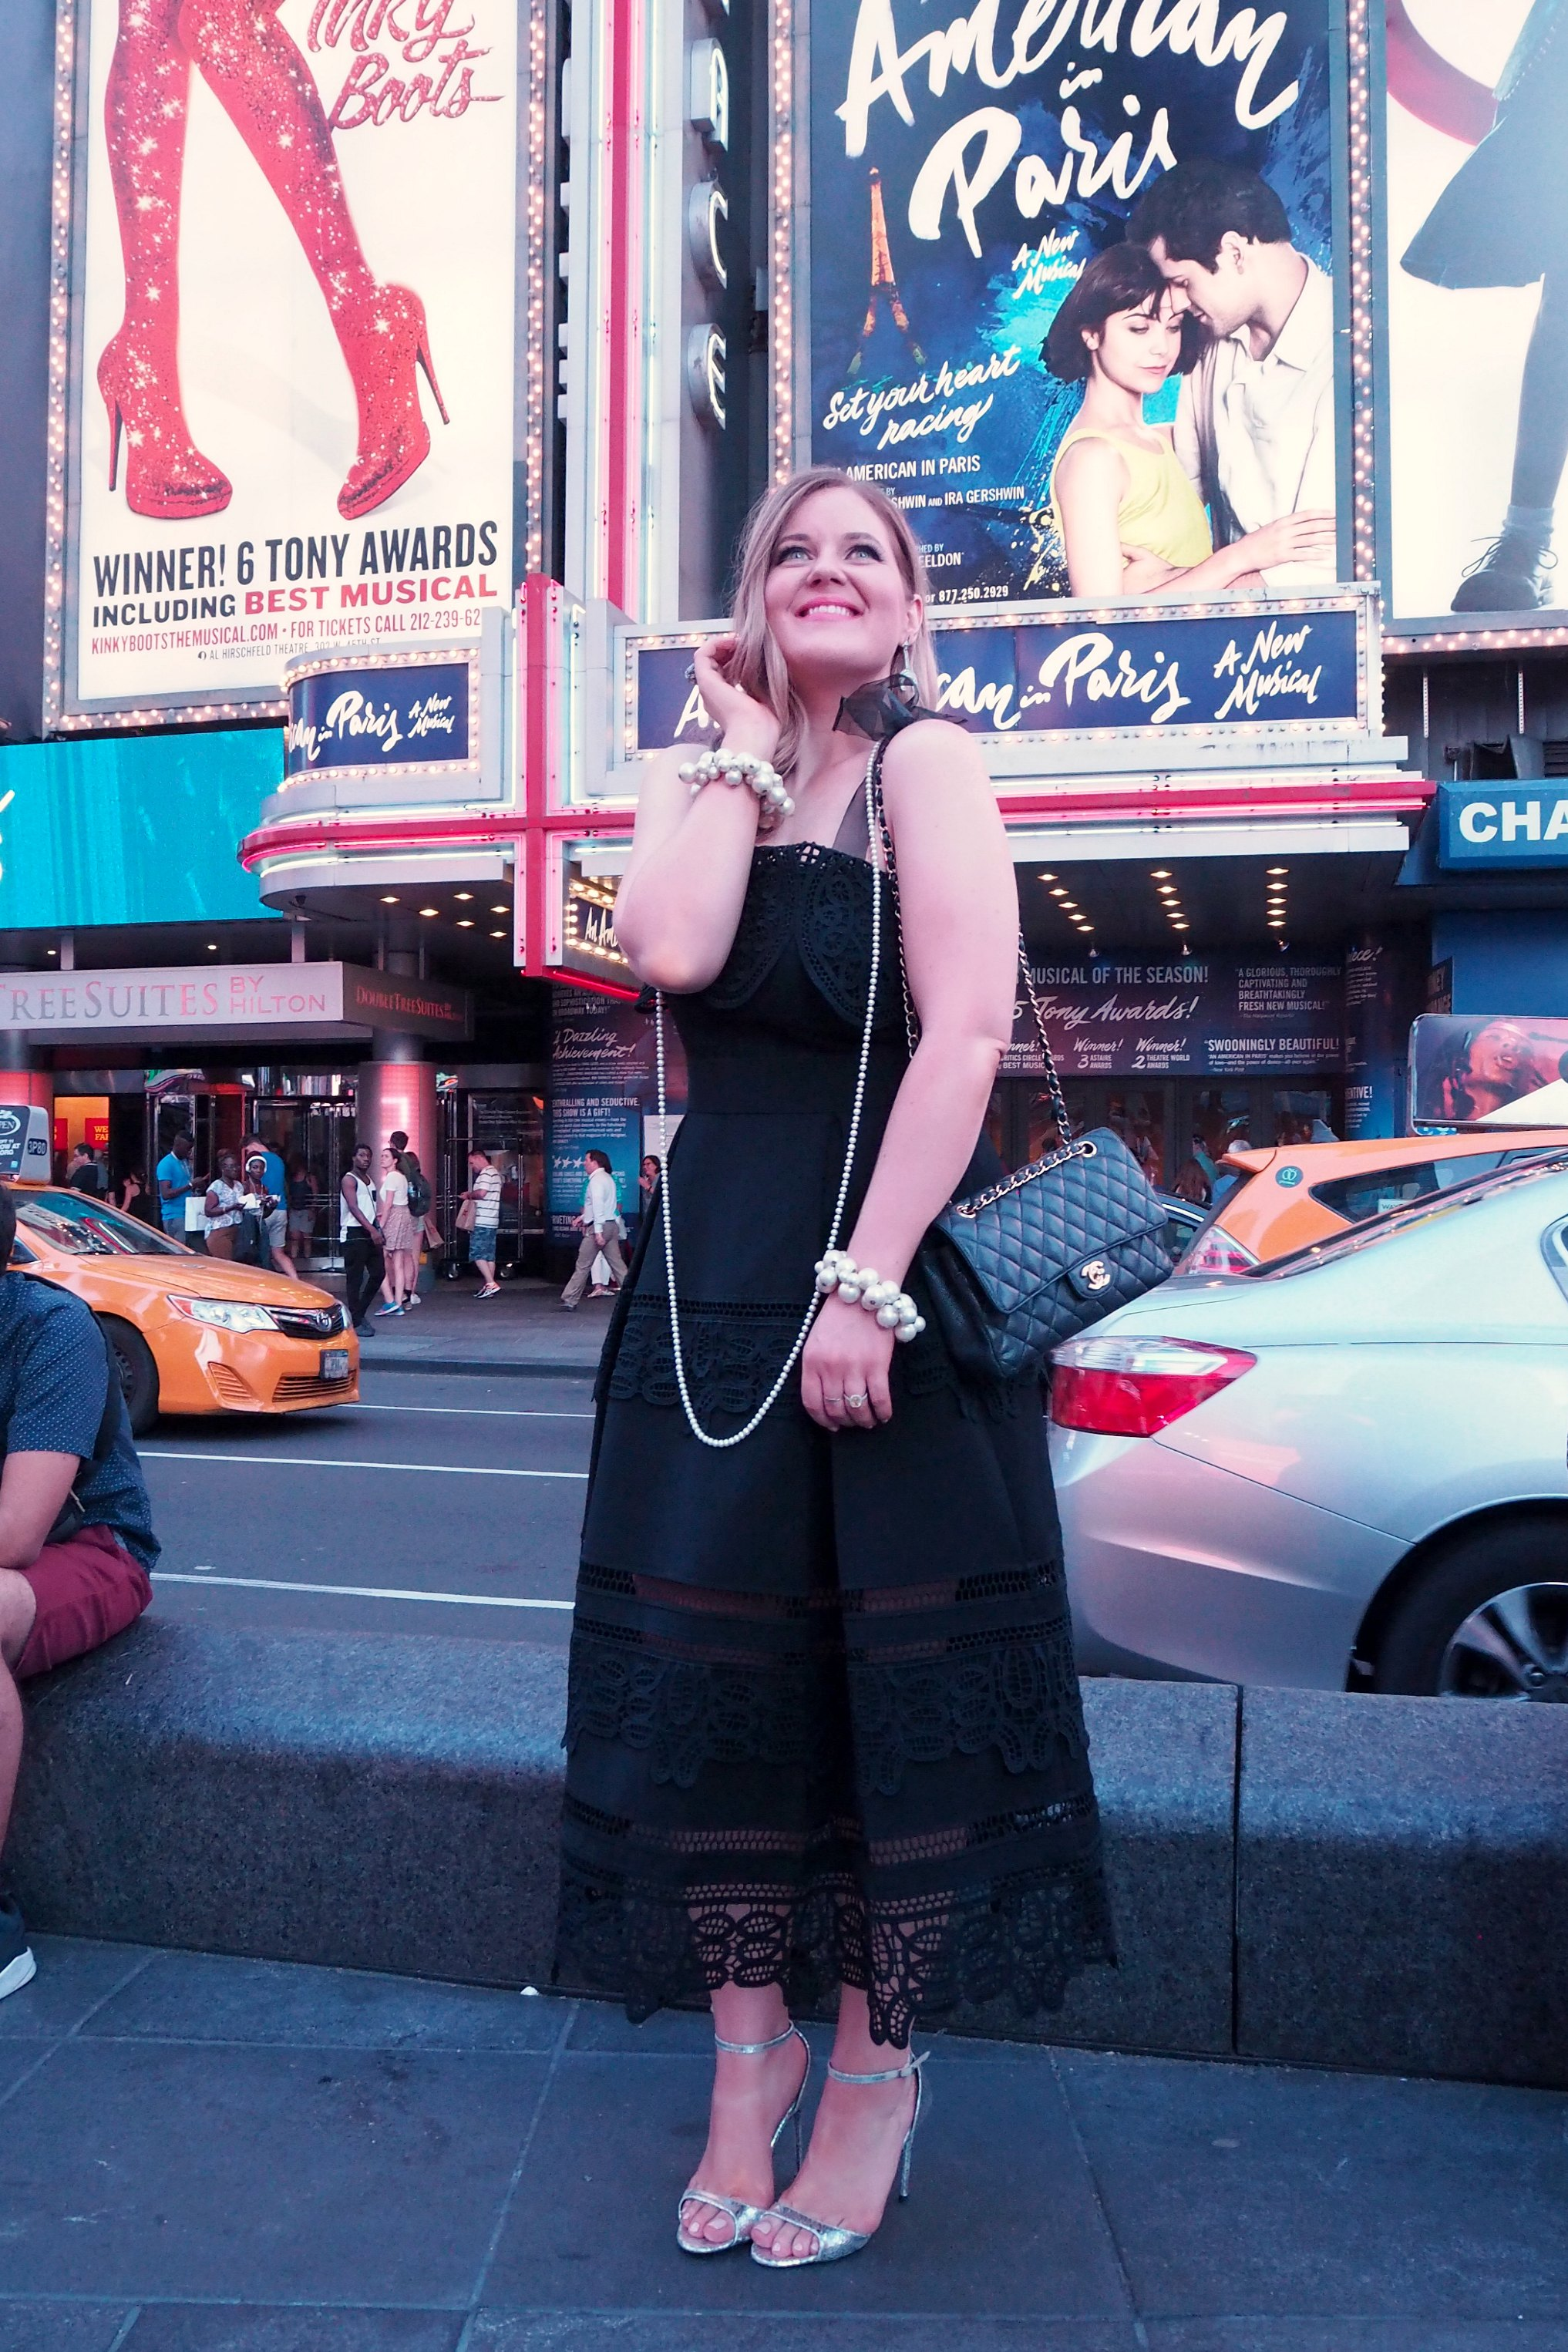 By Invitation: A Night in New York with Michael Bublé